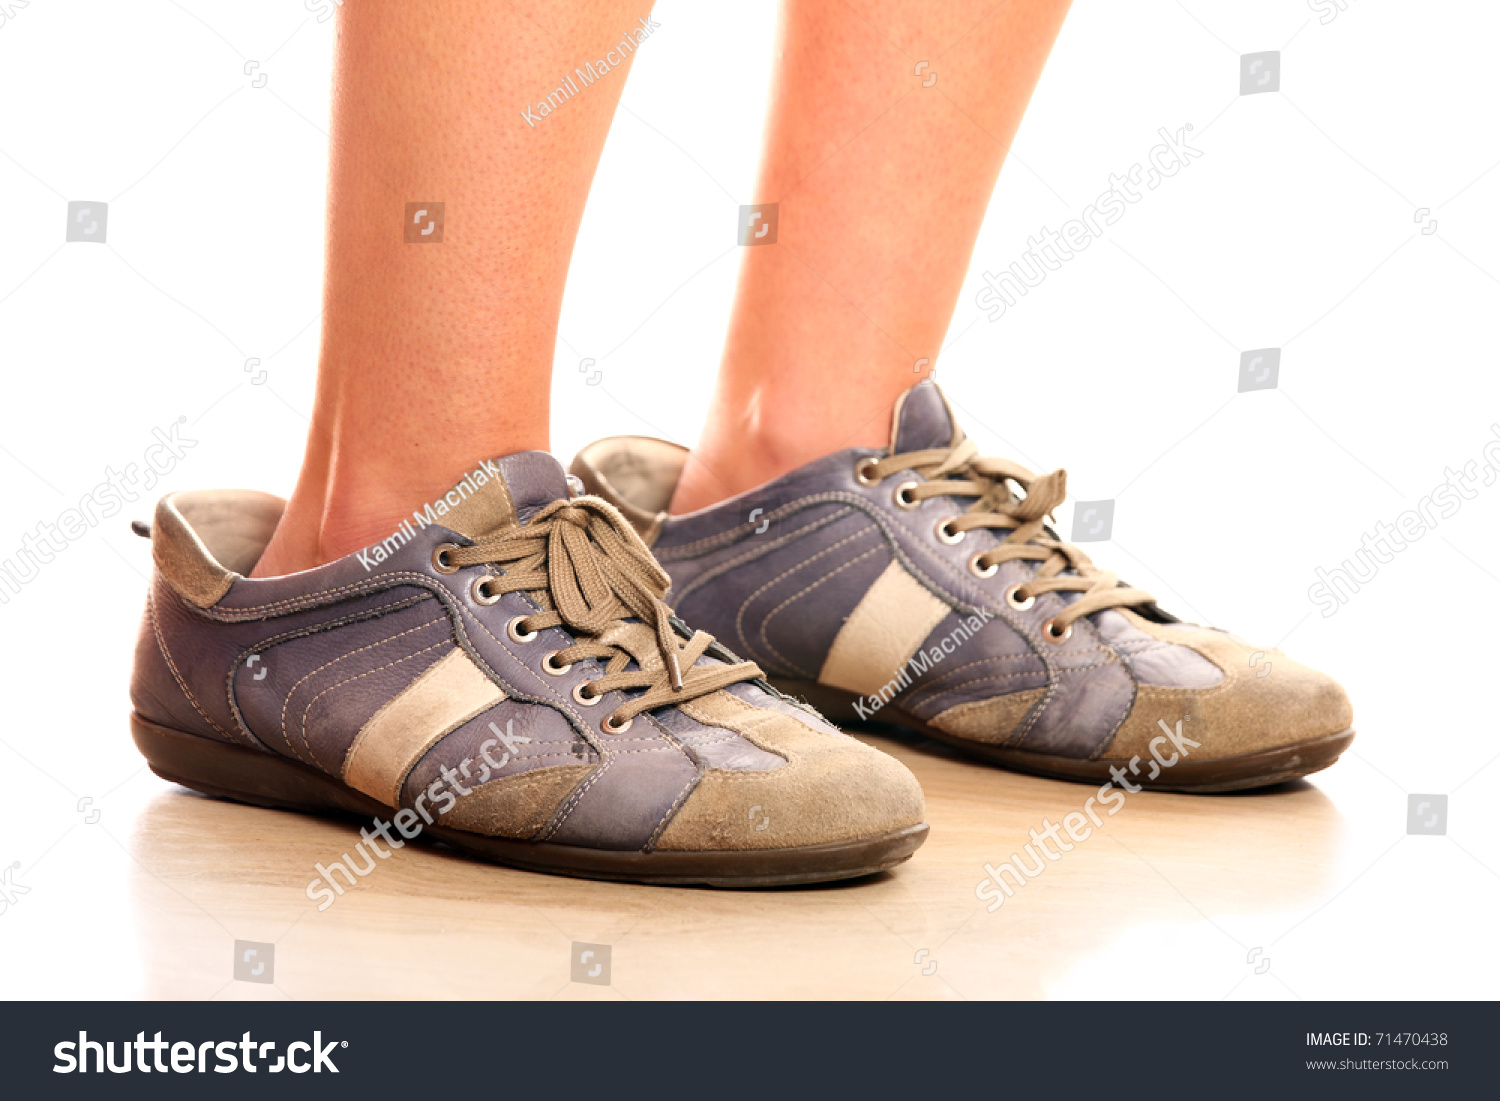 Background image too big - A Closeup Of Female Legs Trying On Too Big Male Shoes Over White Background